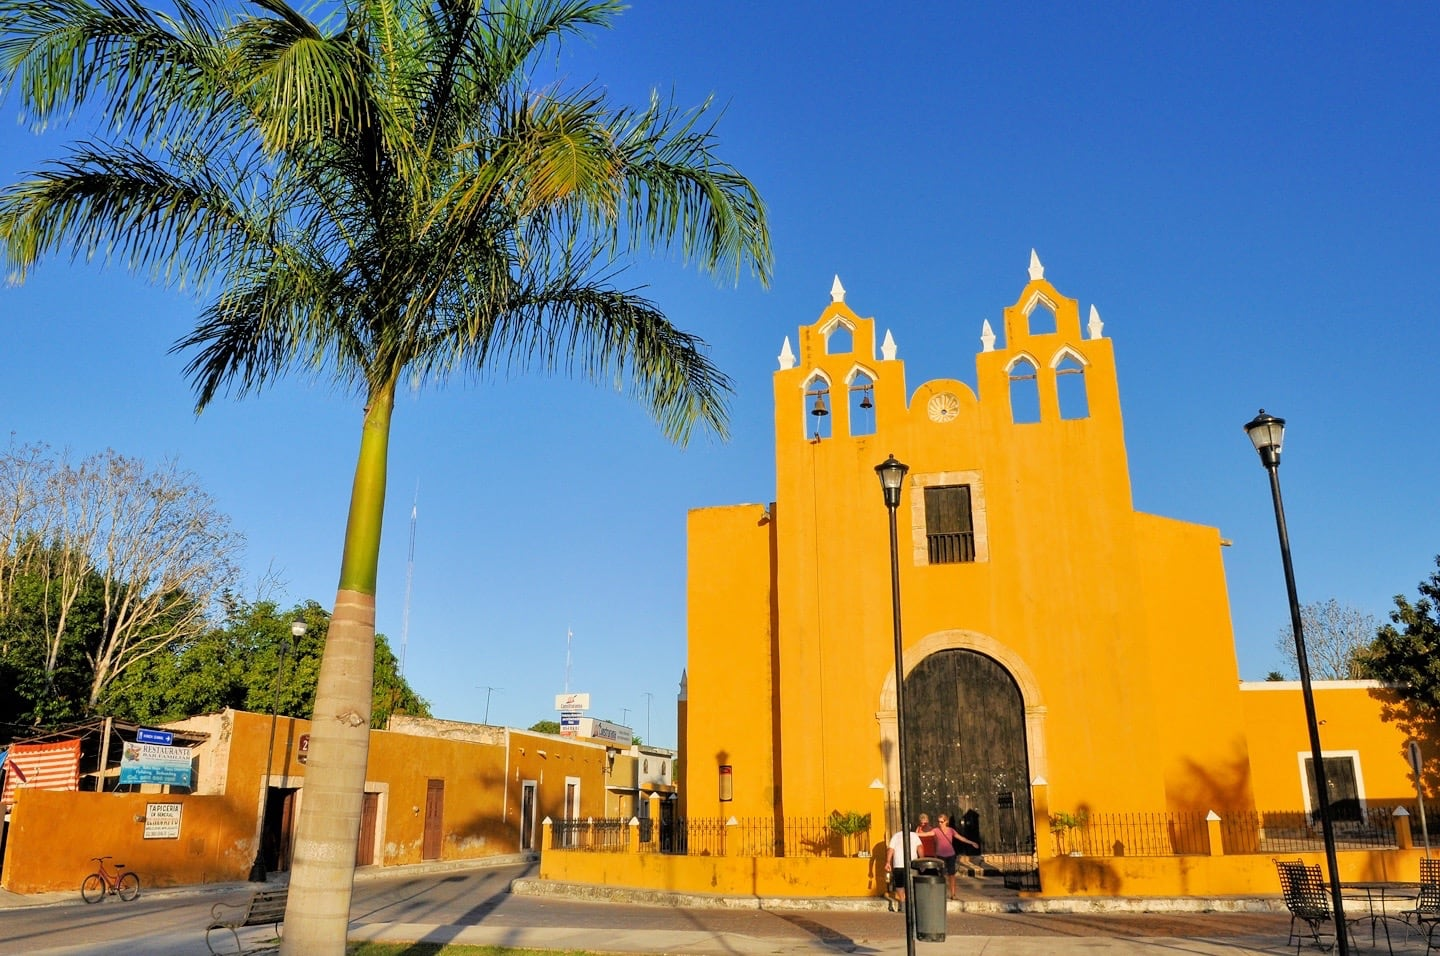 Izamal Mexico striking yellow church